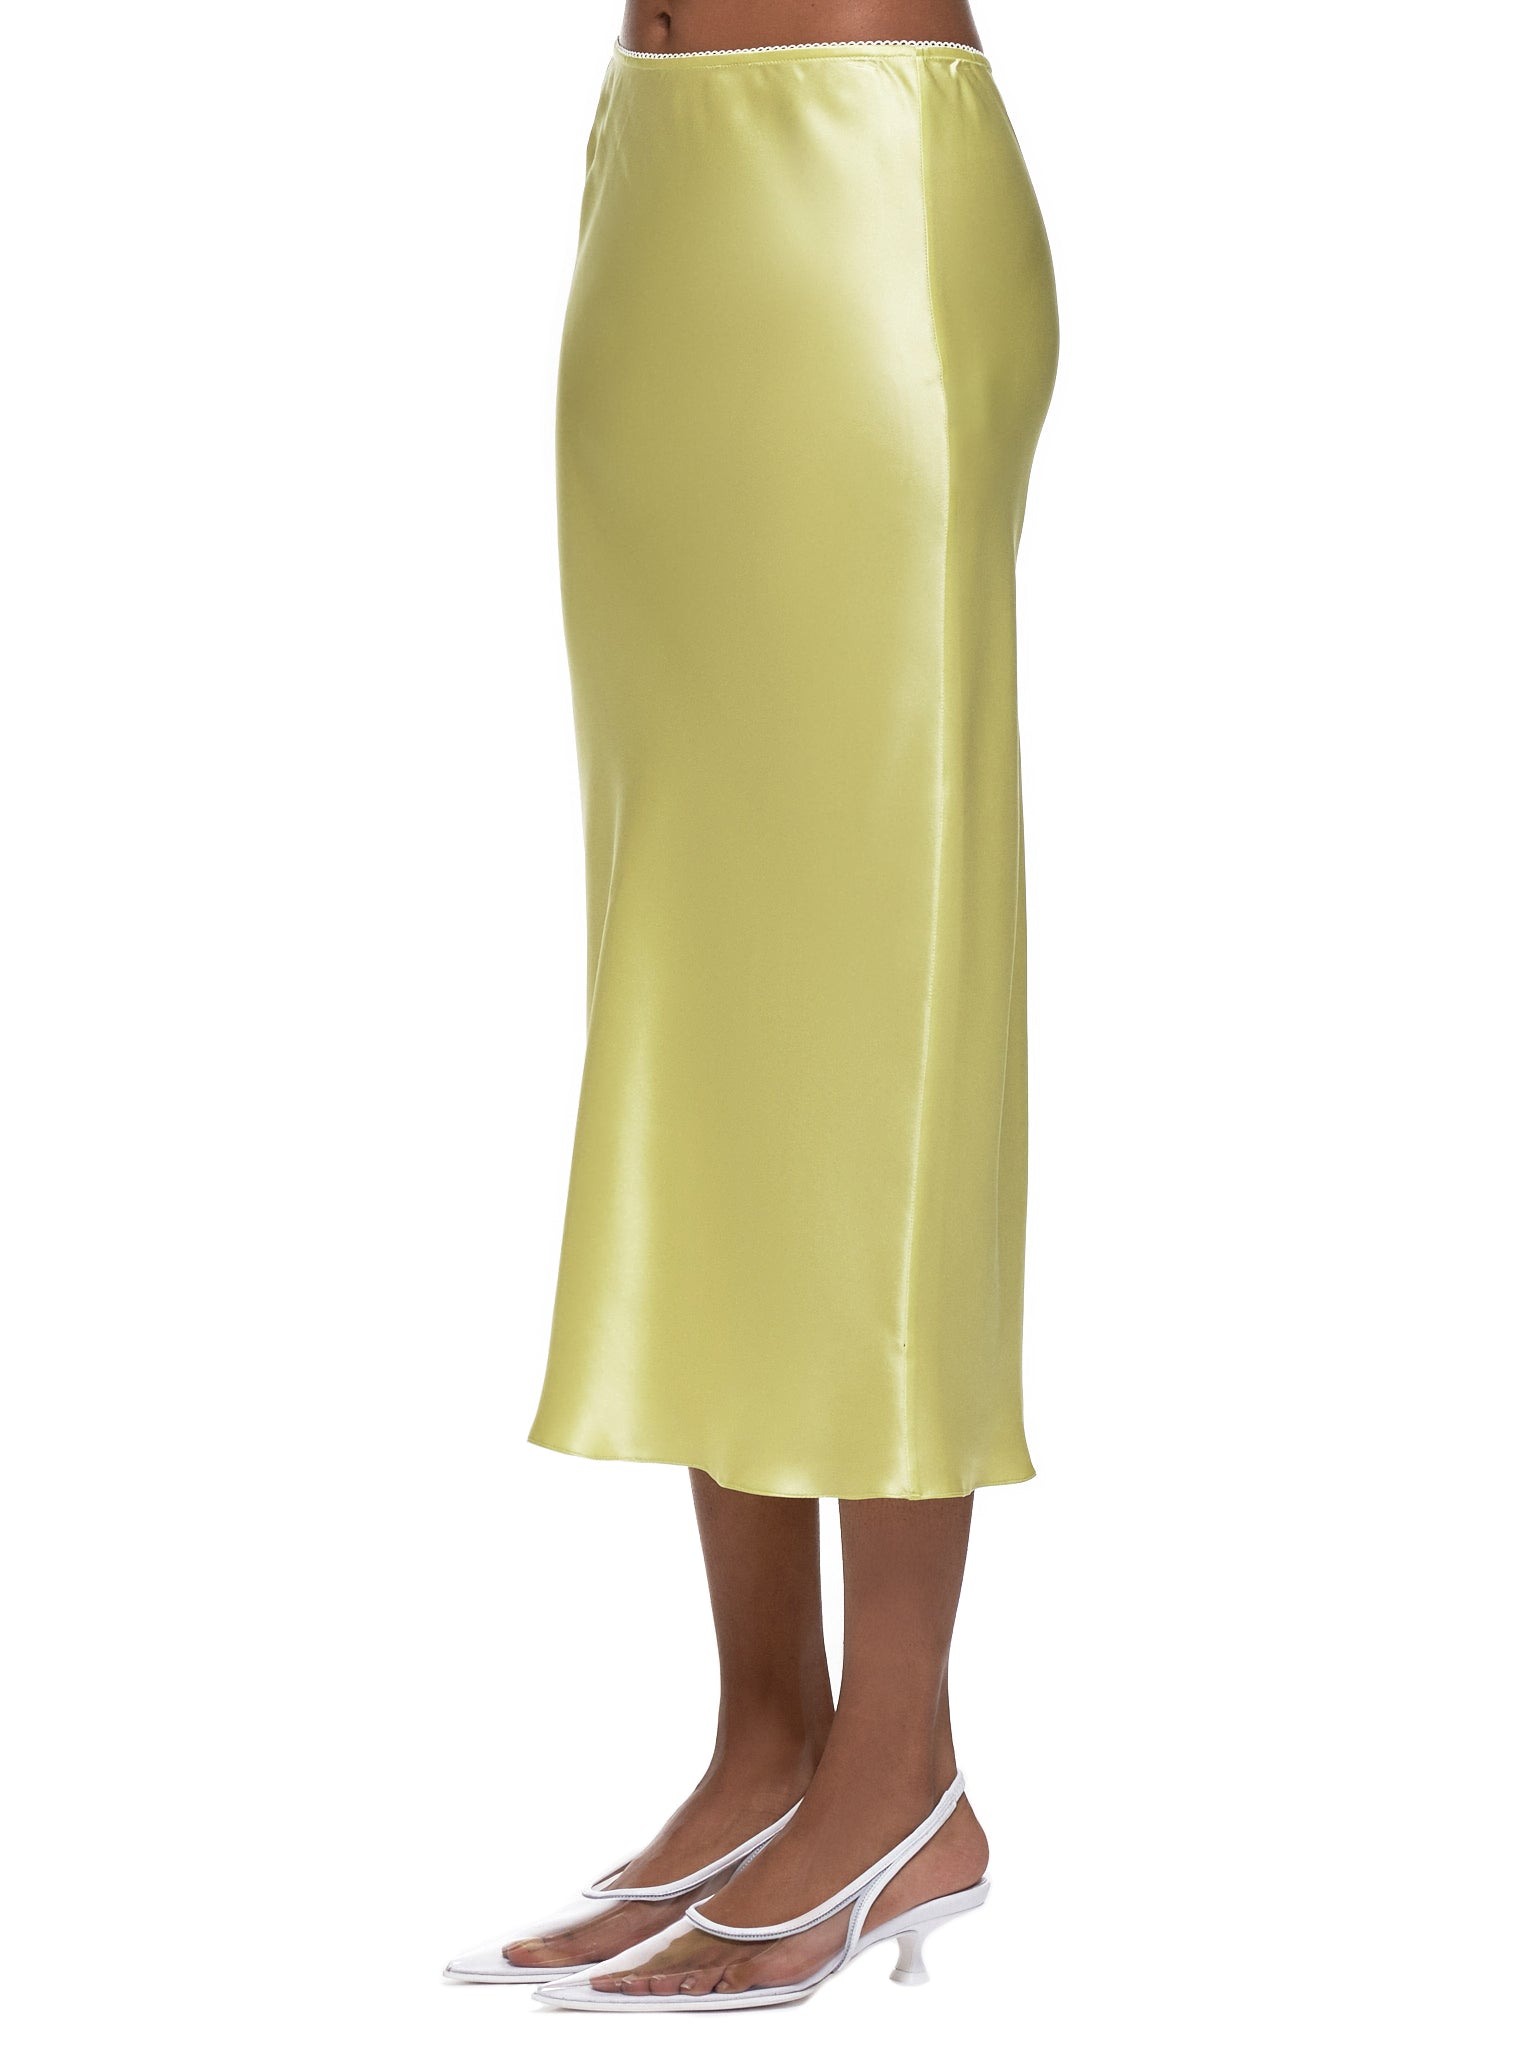 Honey Slip Skirt (002015-005-HONEYDEW)